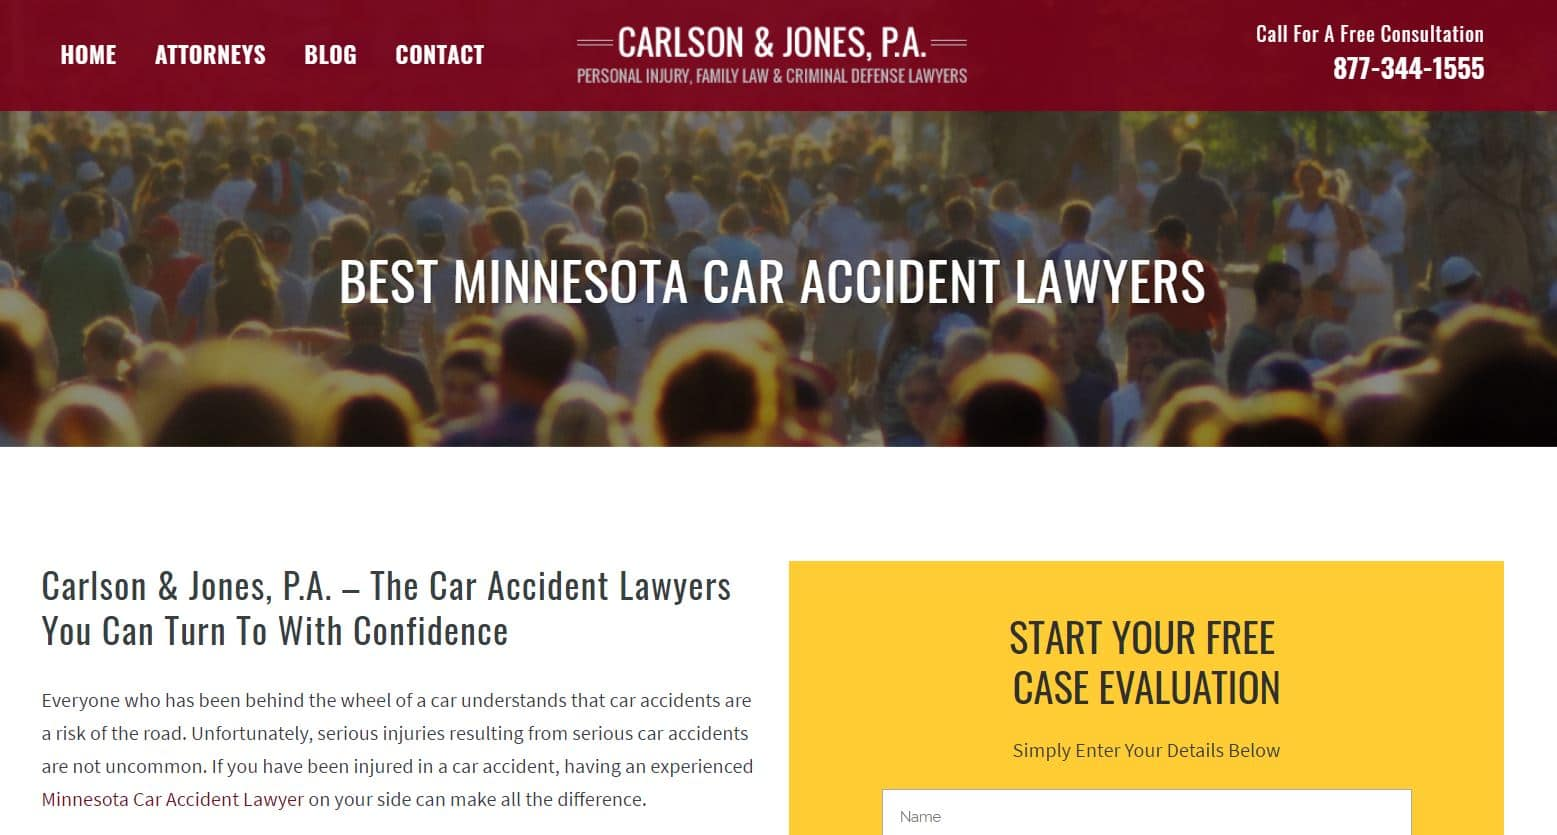 Law Firm Marketing Website Design